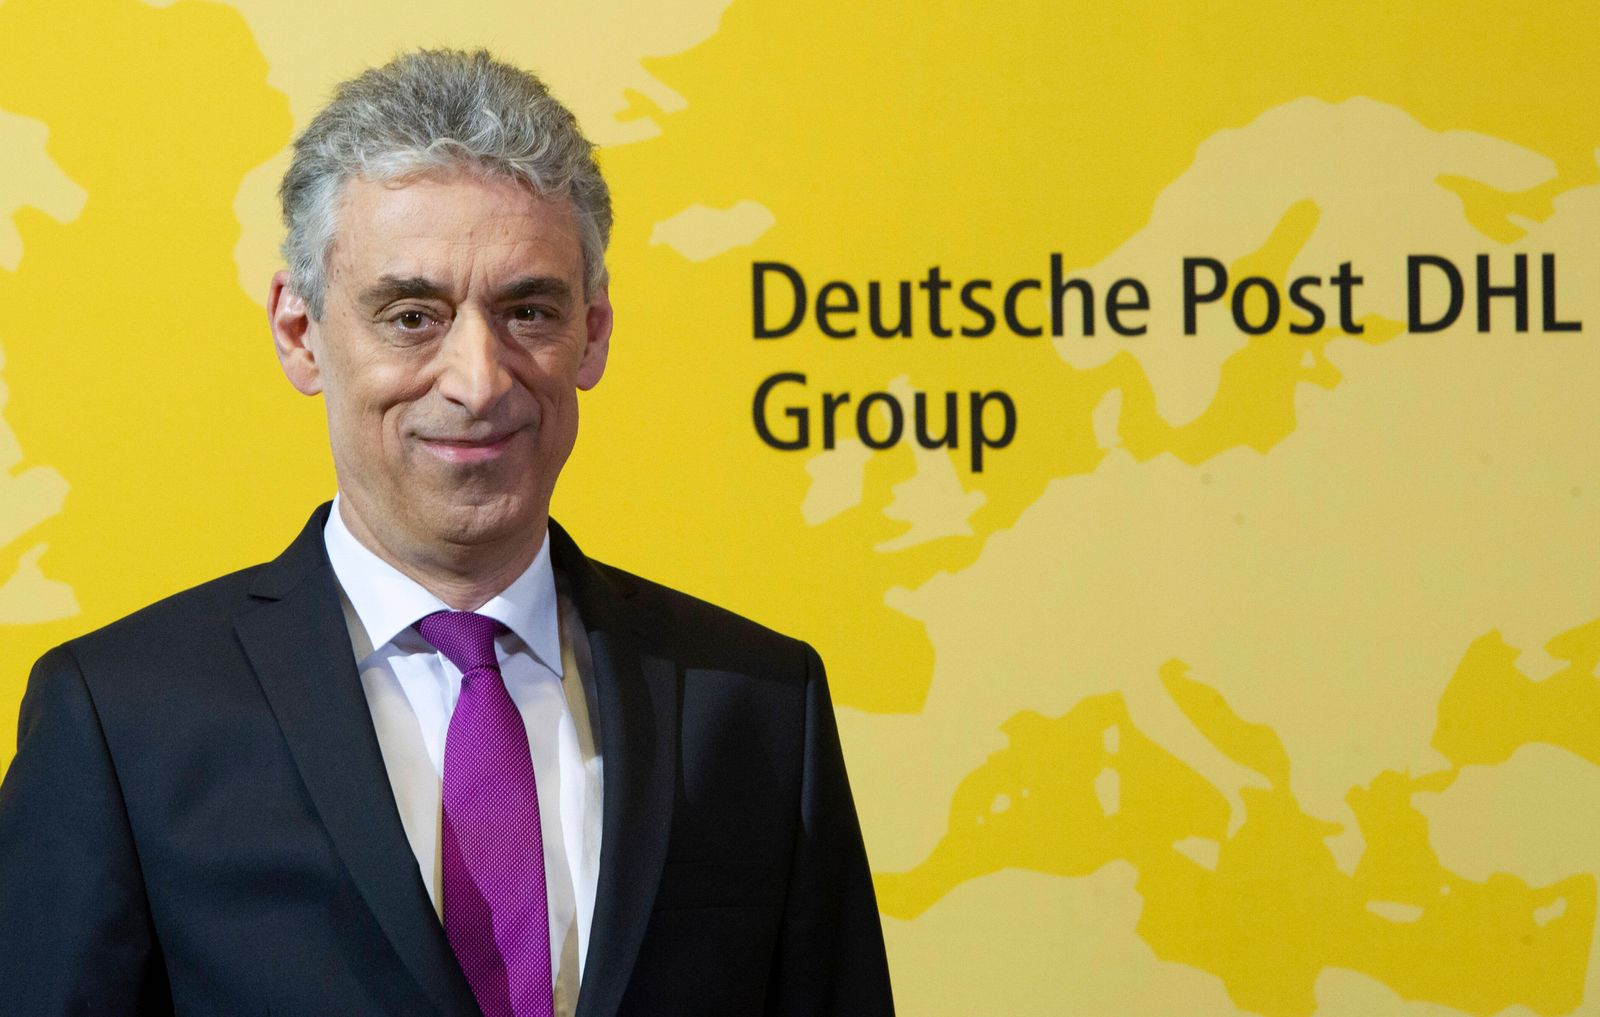 Dr. Frank APPEL (Vorstandsvorsitzender, CEO, Global Business Services) Bilanzpressekonferenz der Deutsche Post DHL Group